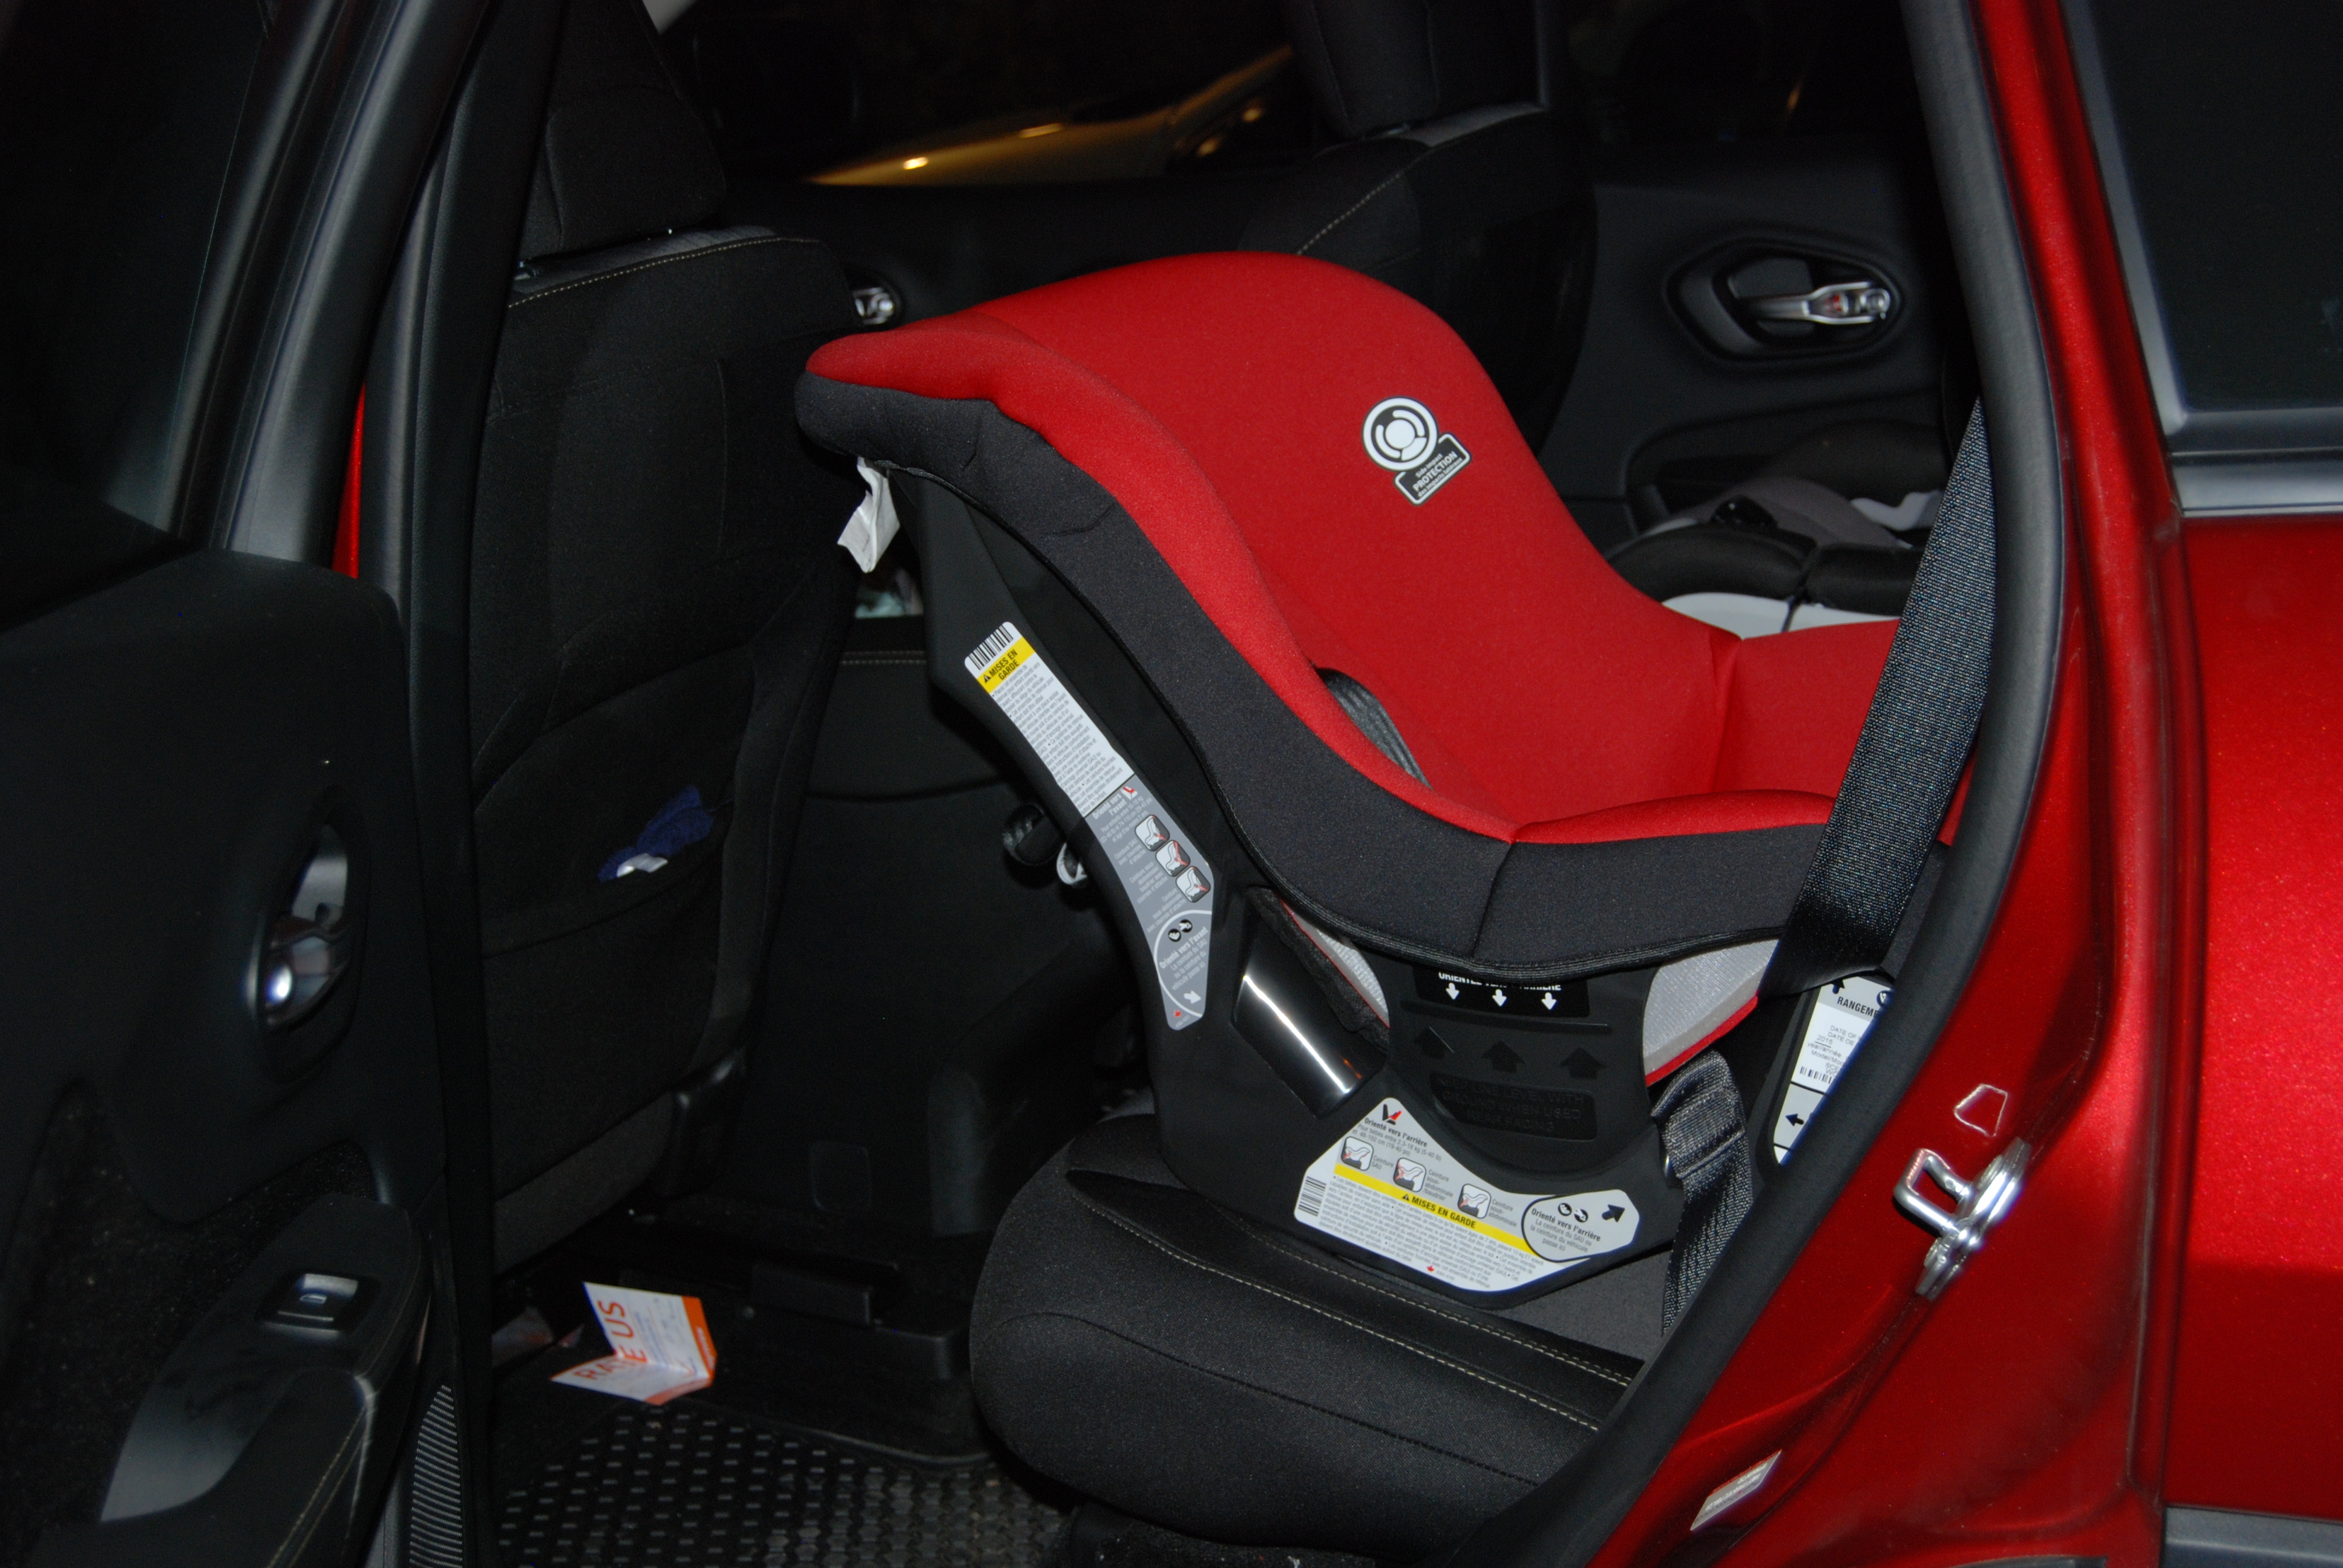 Cosco Scenera Next Convertible Car Seat #REVIEW - Naturally ed